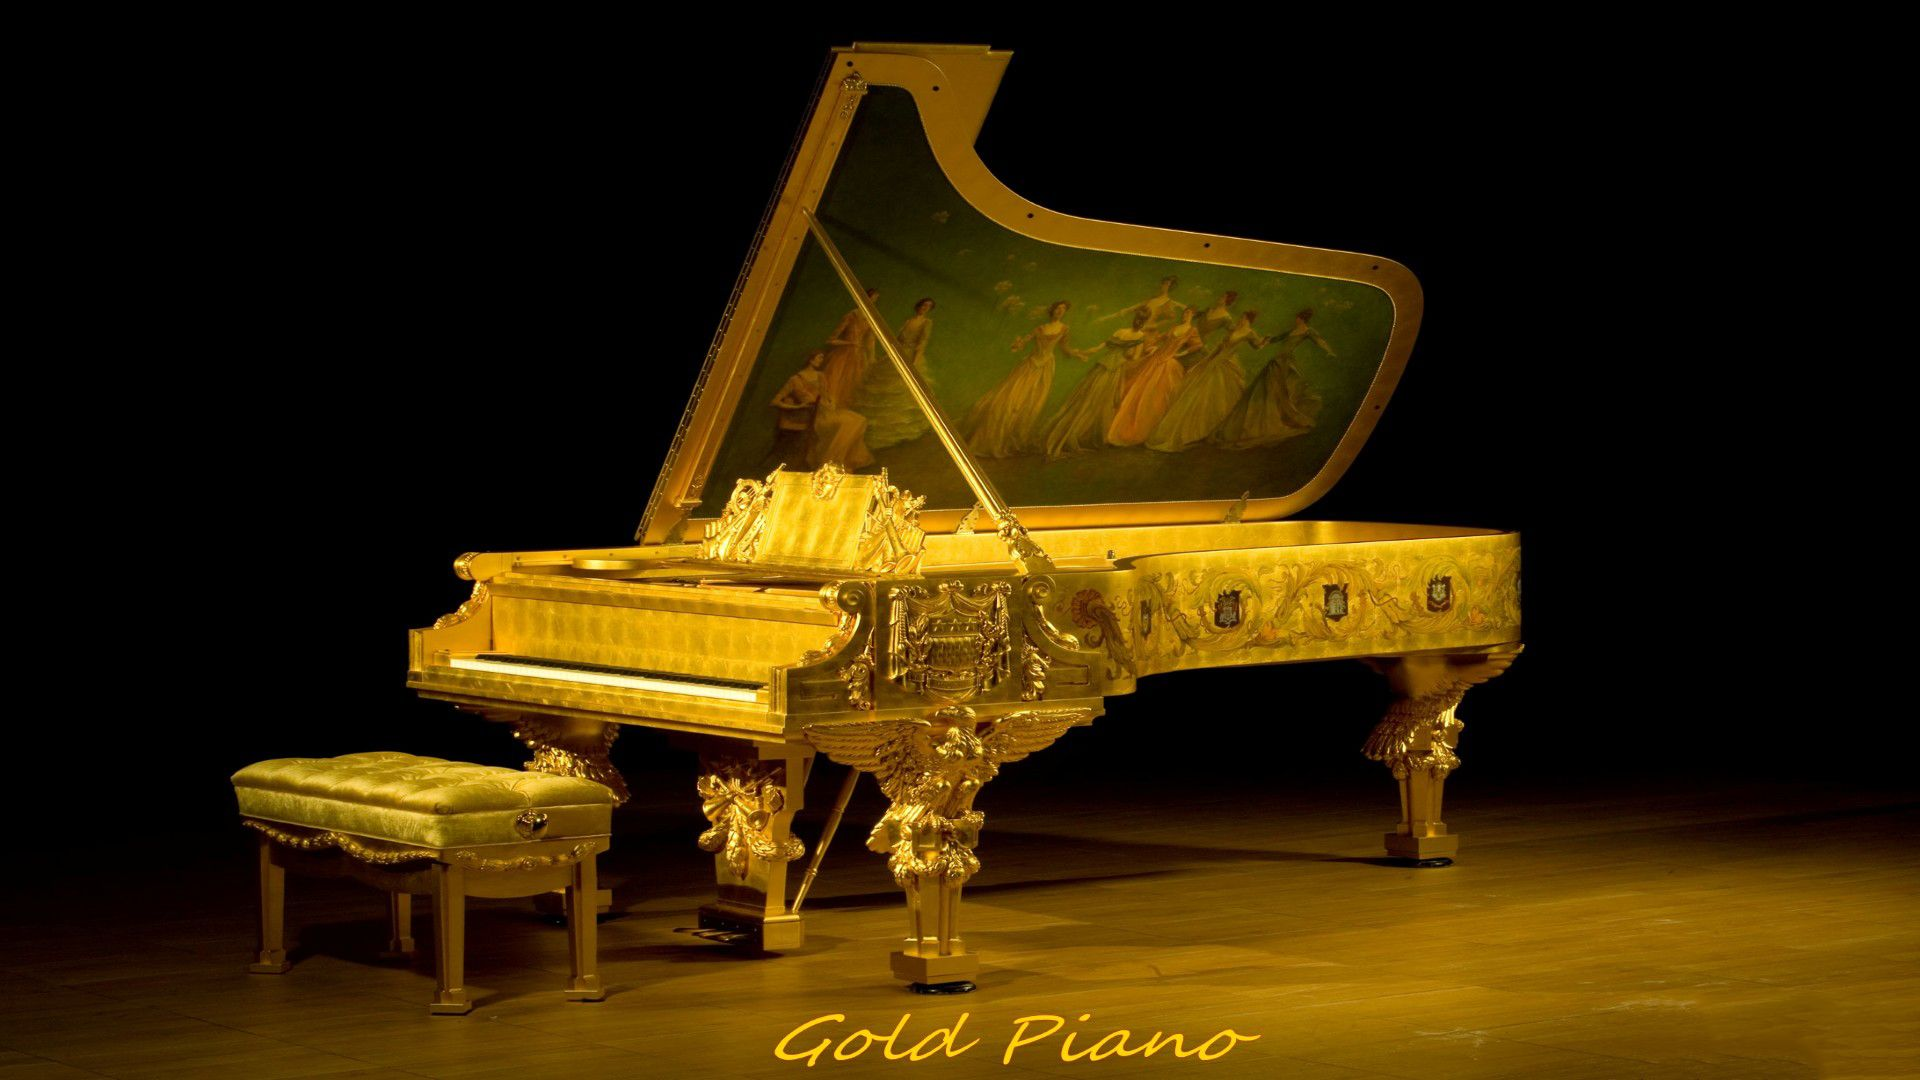 Baby Grand Piano Wallpaper 1920x1200 51 Wallpapers